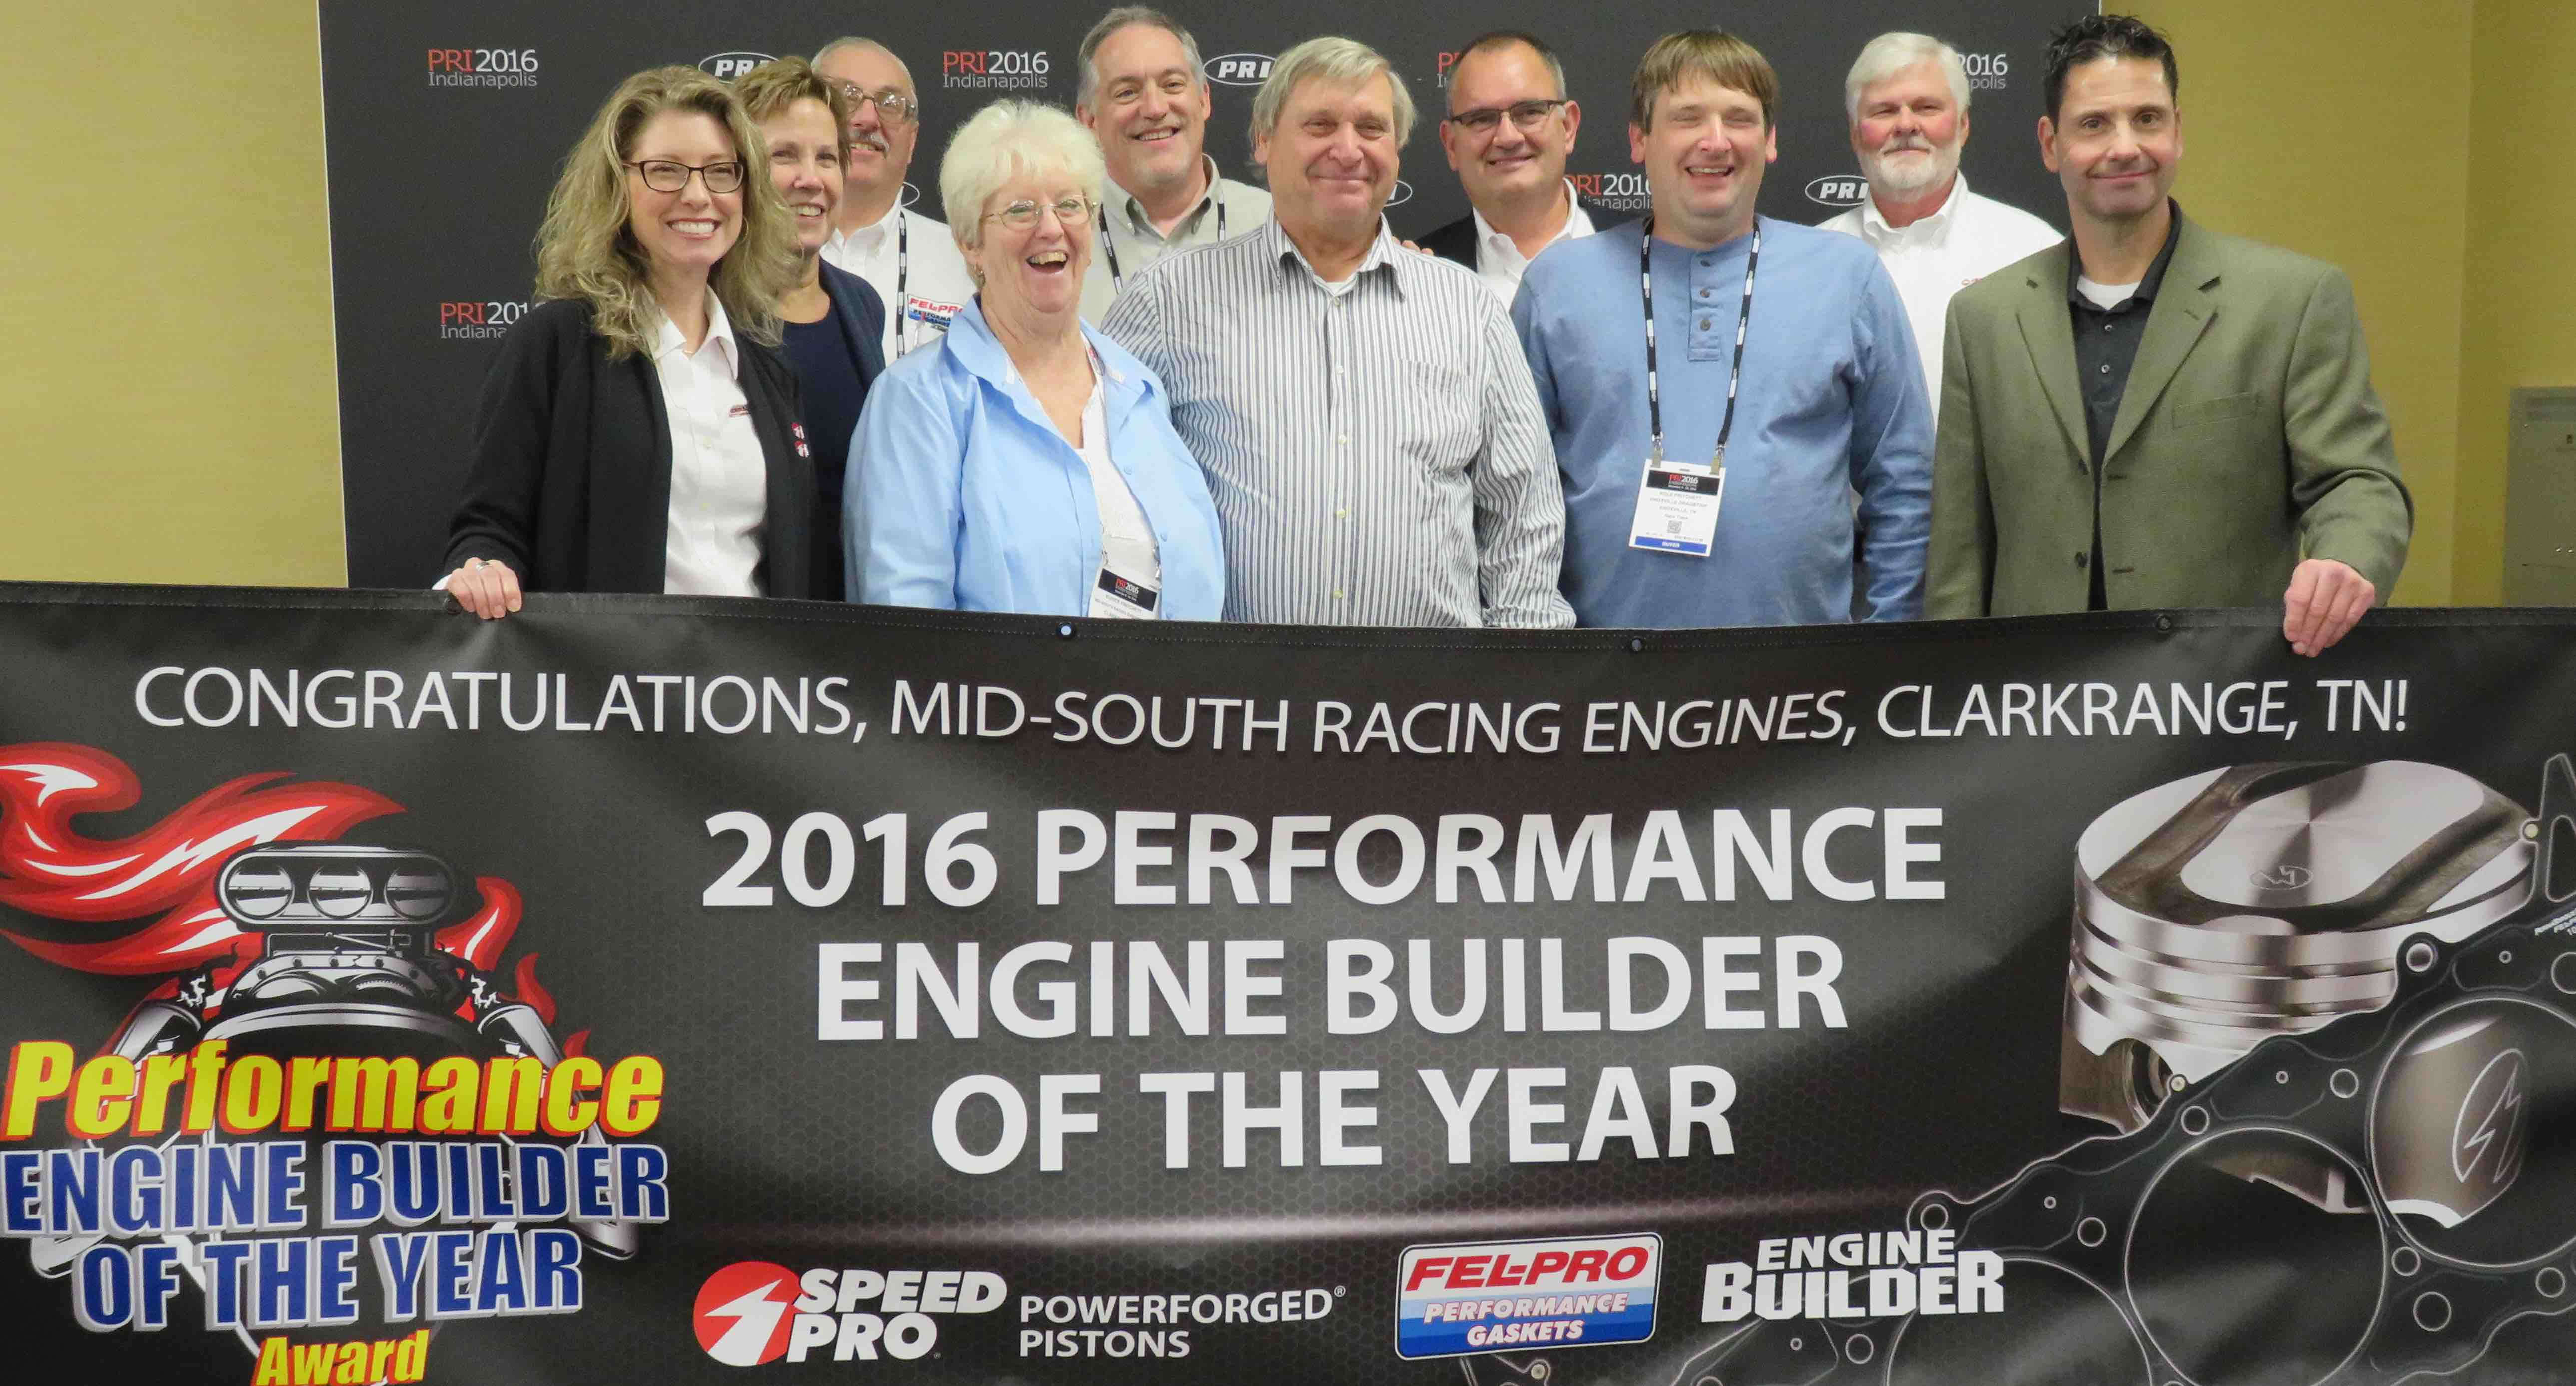 Larry Pritchett (center) is the 2016 High Performance Engine Builder of the Year